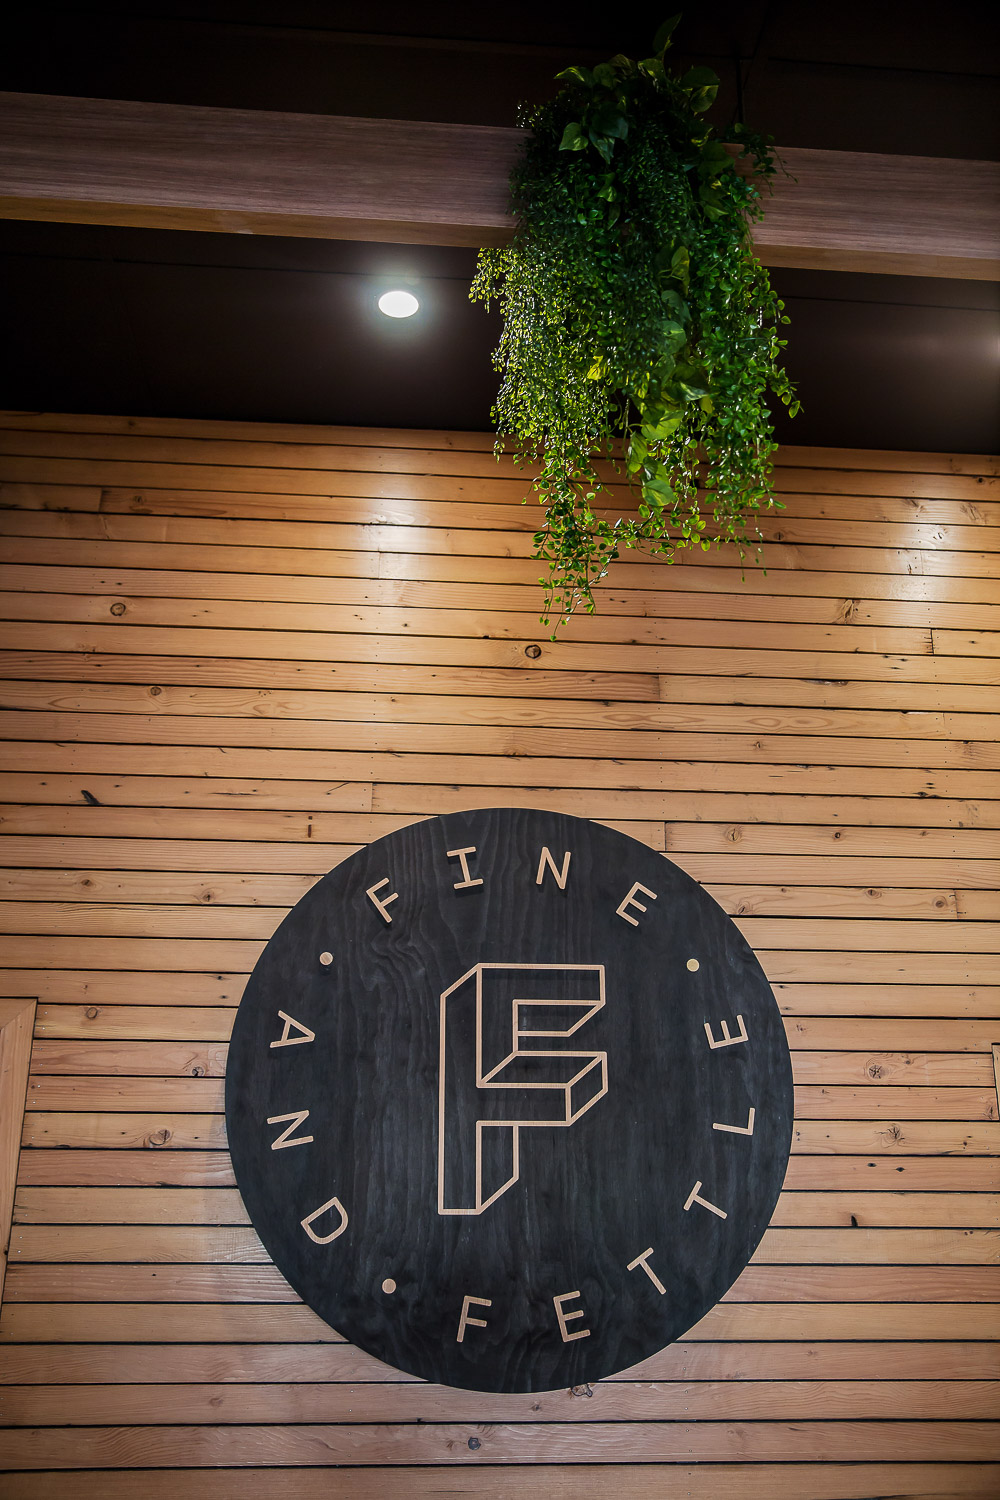 Fine & Fettle Cafe - Recycled Timber Feature Wall